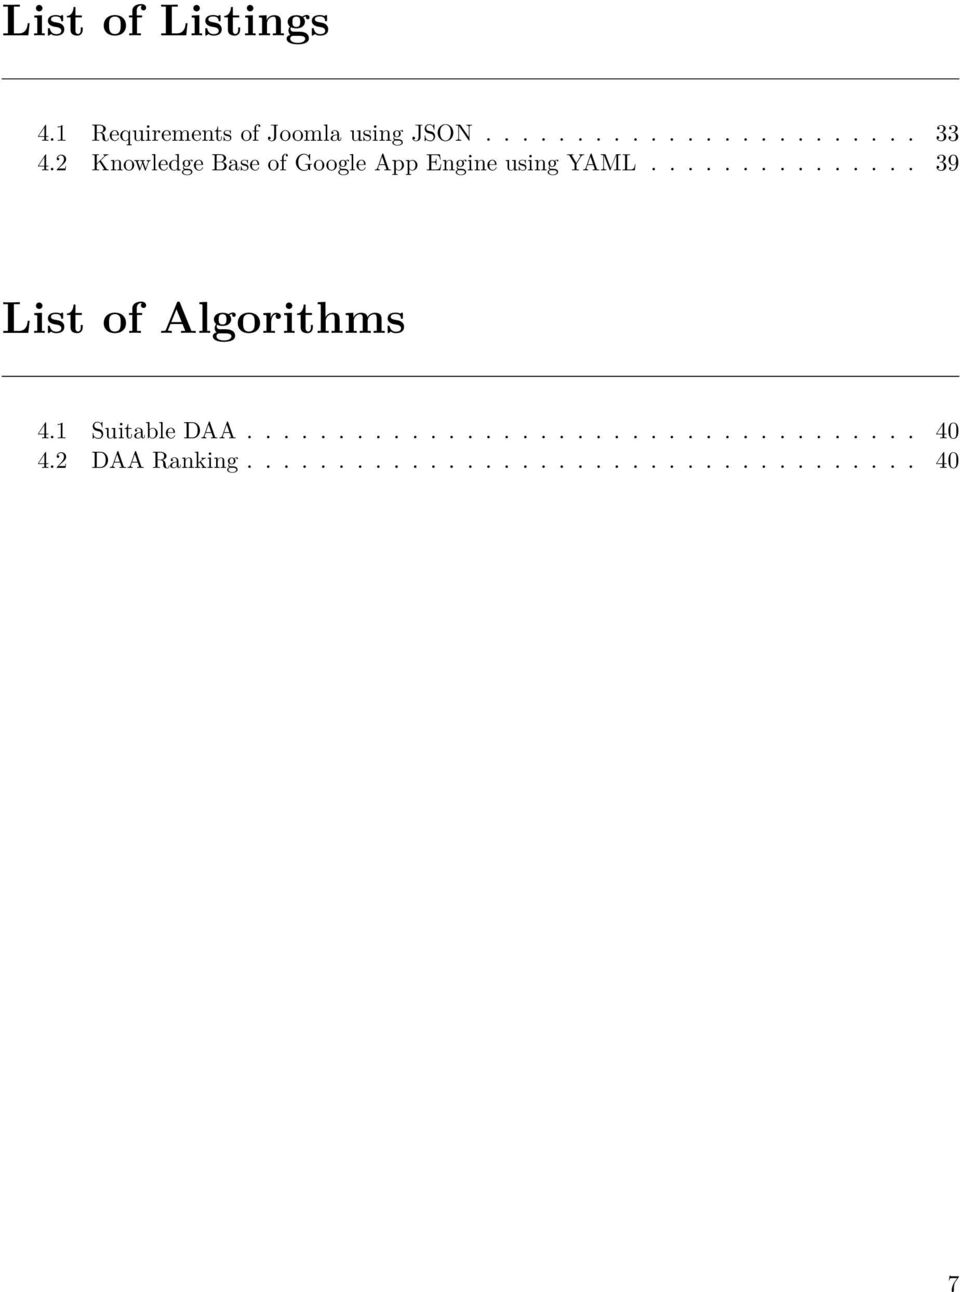 .............. 39 List of Algorithms 4.1 Suitable DAA..................................... 40 4.